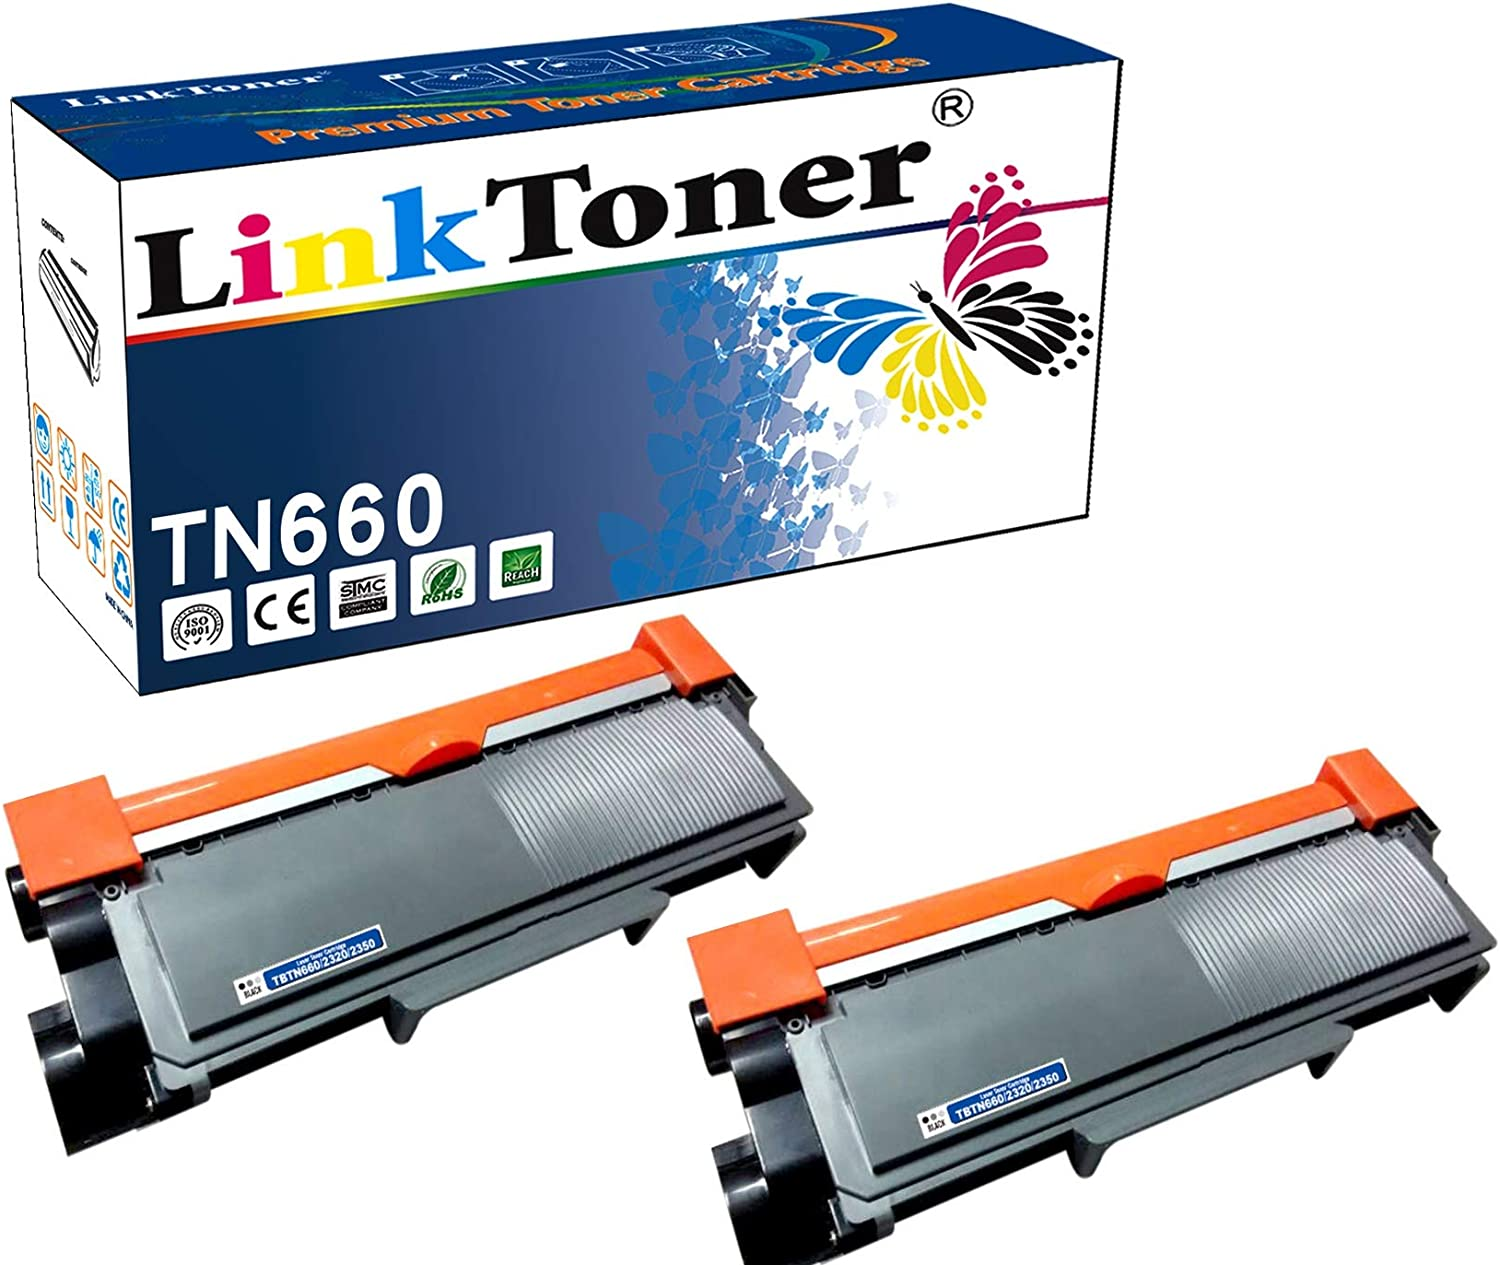 LinkToner TN660 Compatible Toner Cartridge Replacement for Brother Tn-660 TN630 Used with Brother Laser Printer Black High Yield 2 Pack